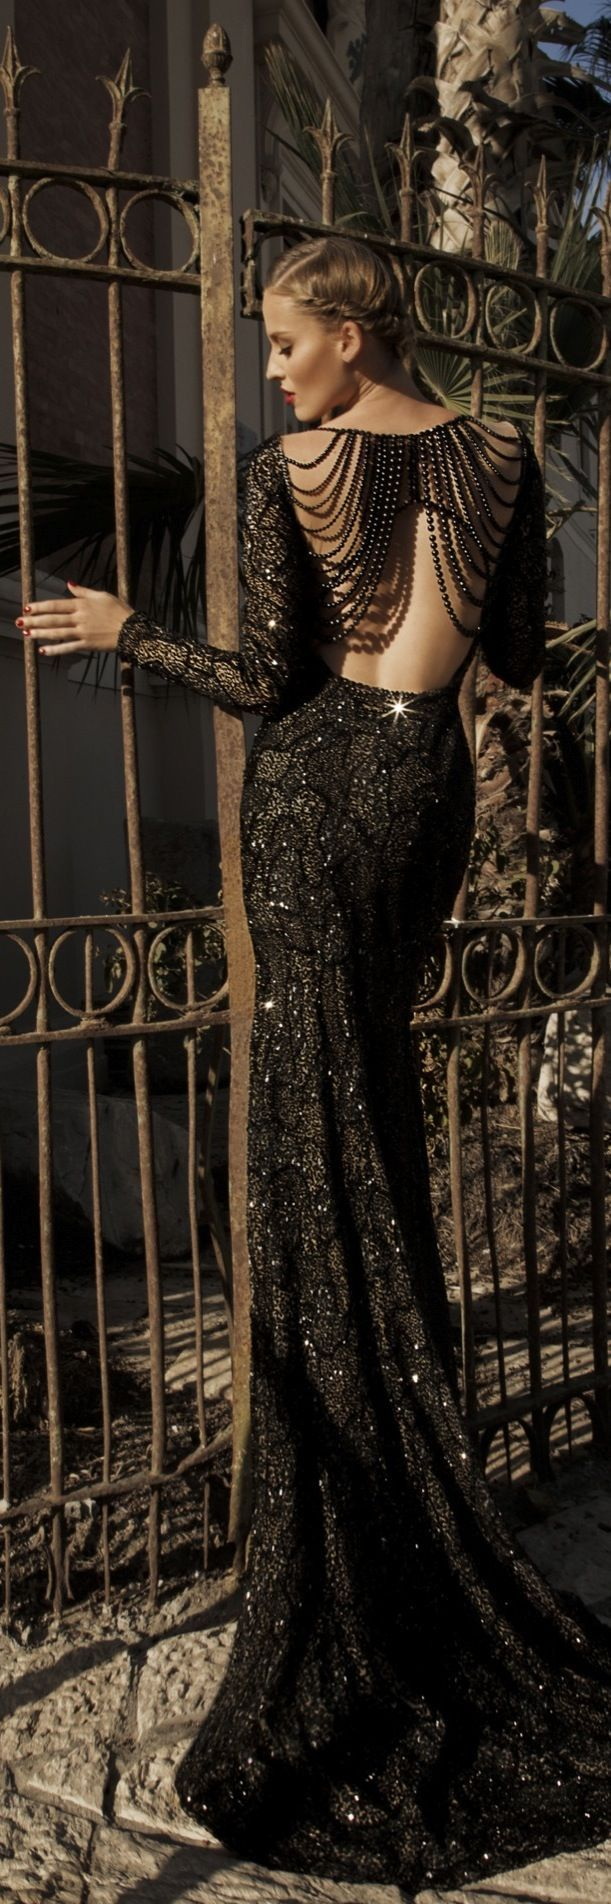 Jupiter: Entirely embroidered in jet-black glass beads that layer over sheer net with draping of black pearls. Necklaces covering the entire back with a very high slit on the front skirt- Galia Lahav